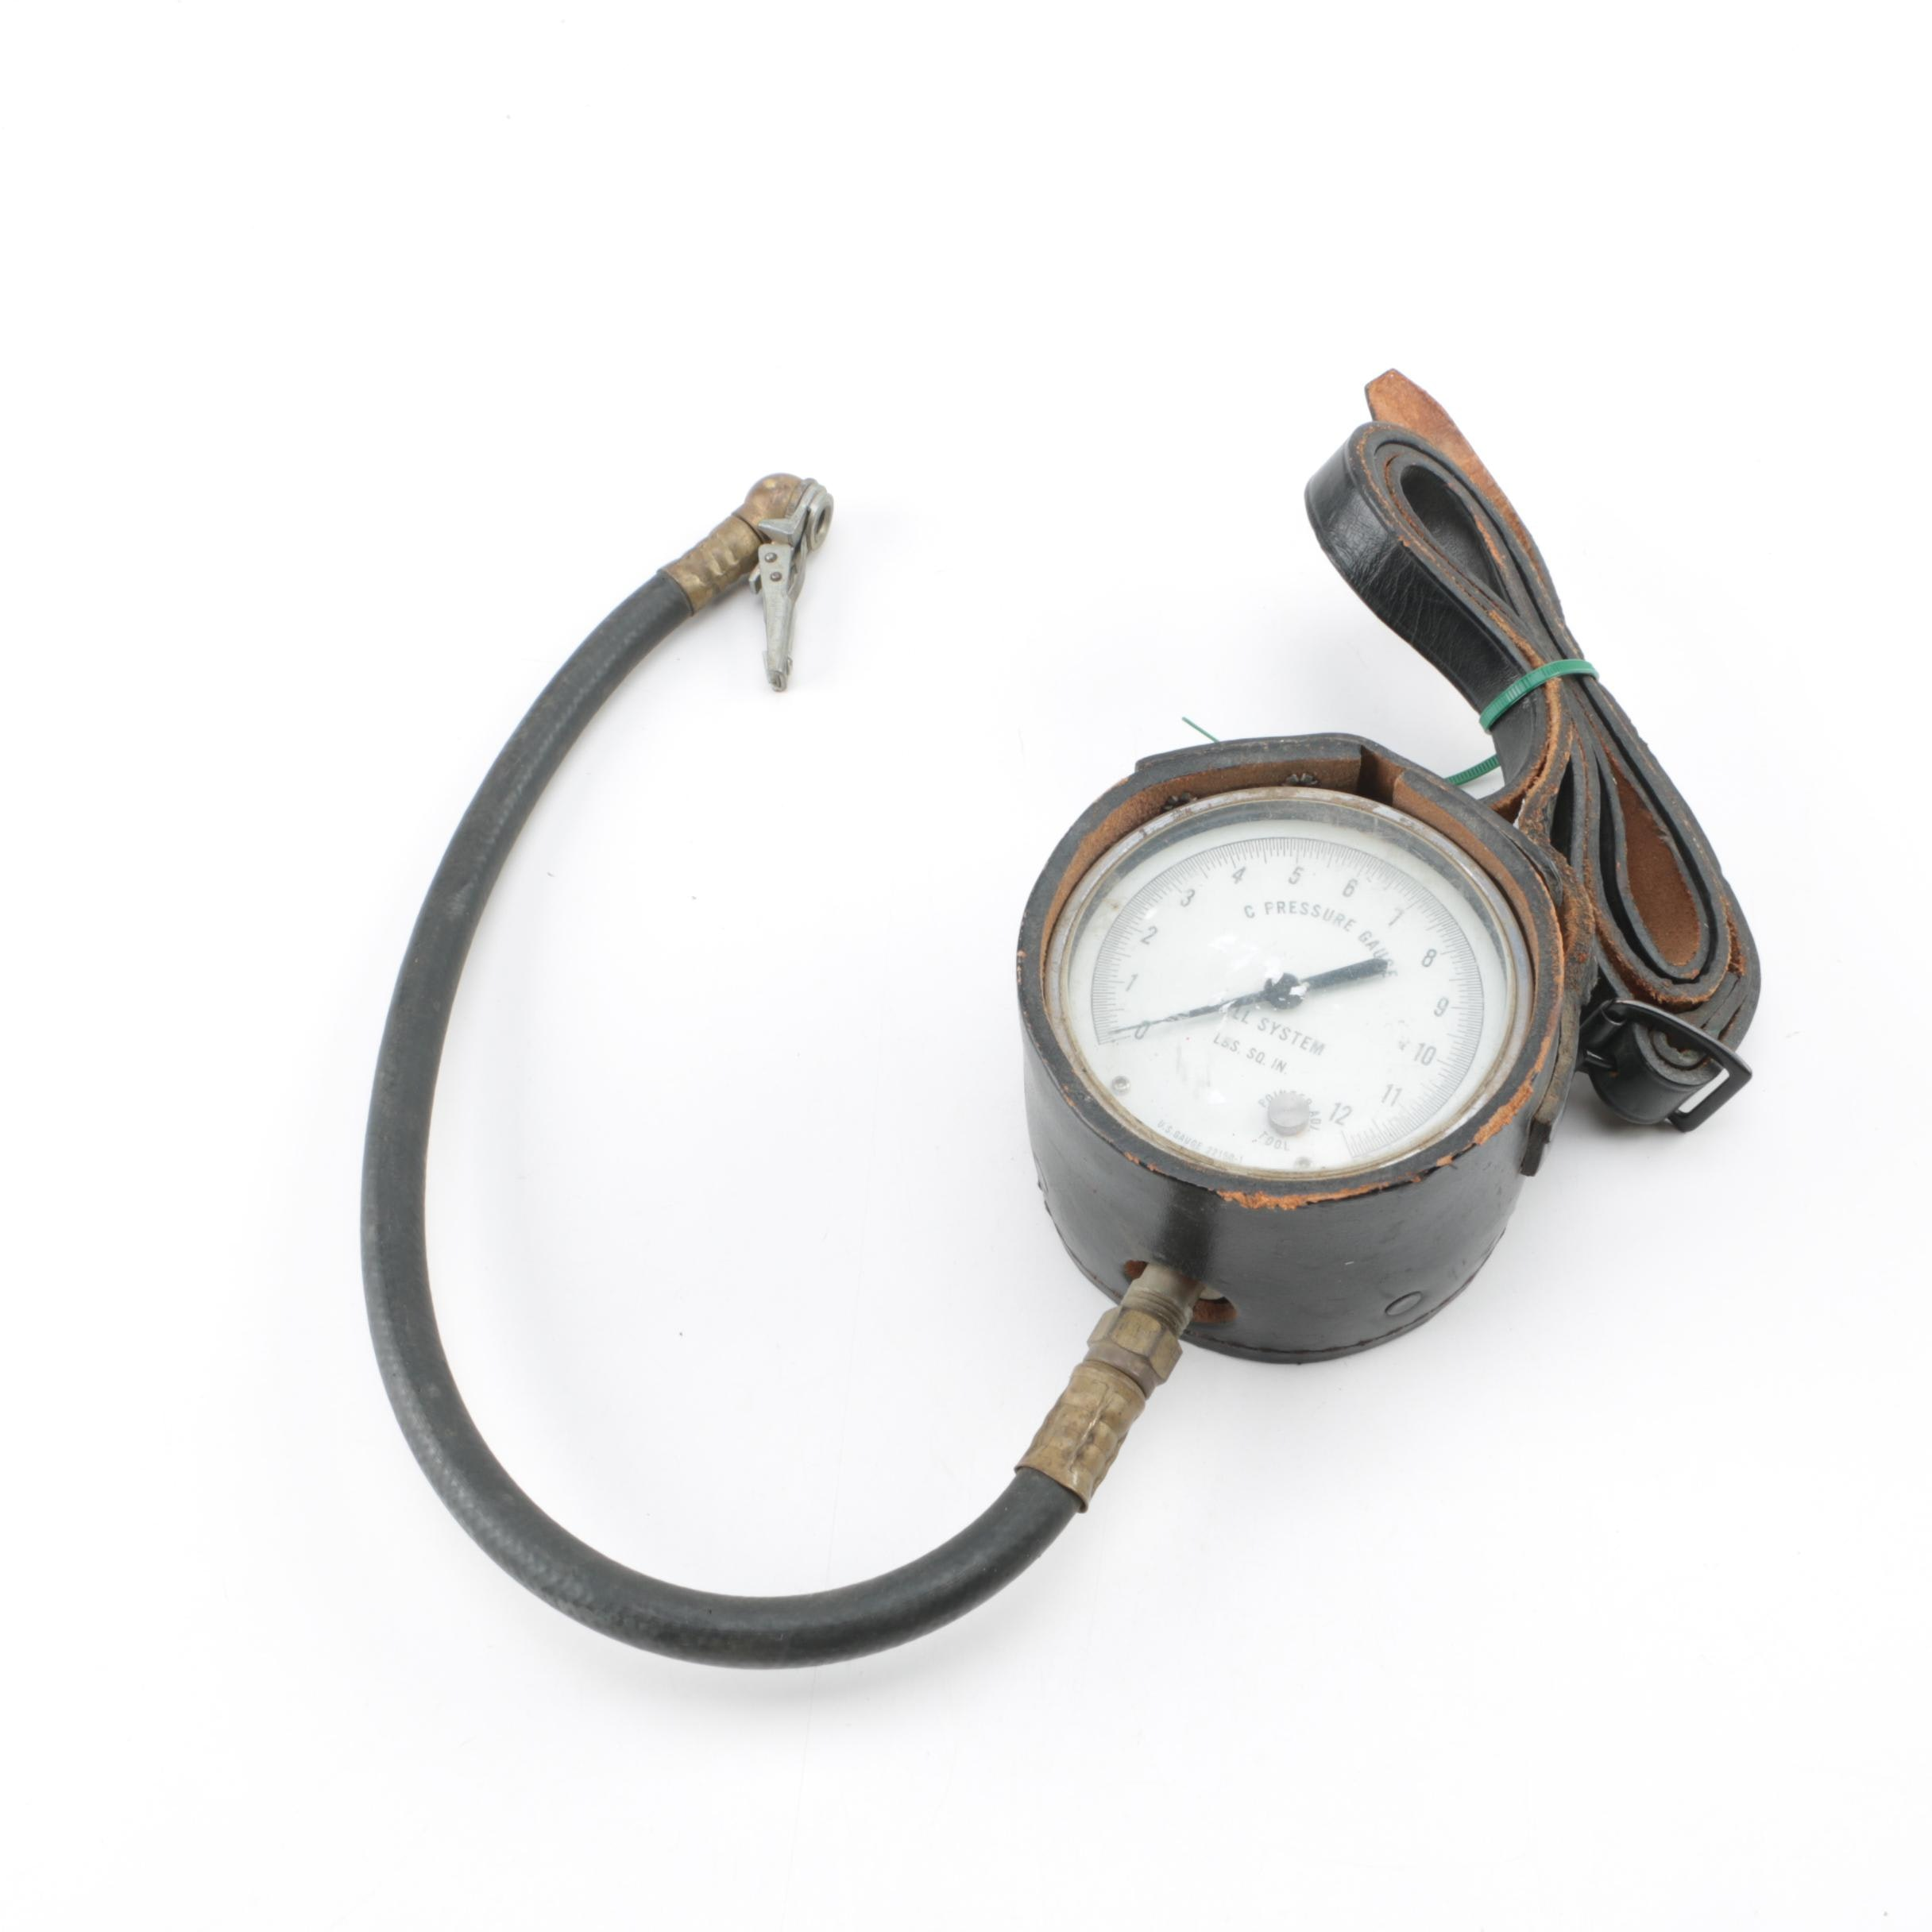 Leather Wrapped Pressure Gauge